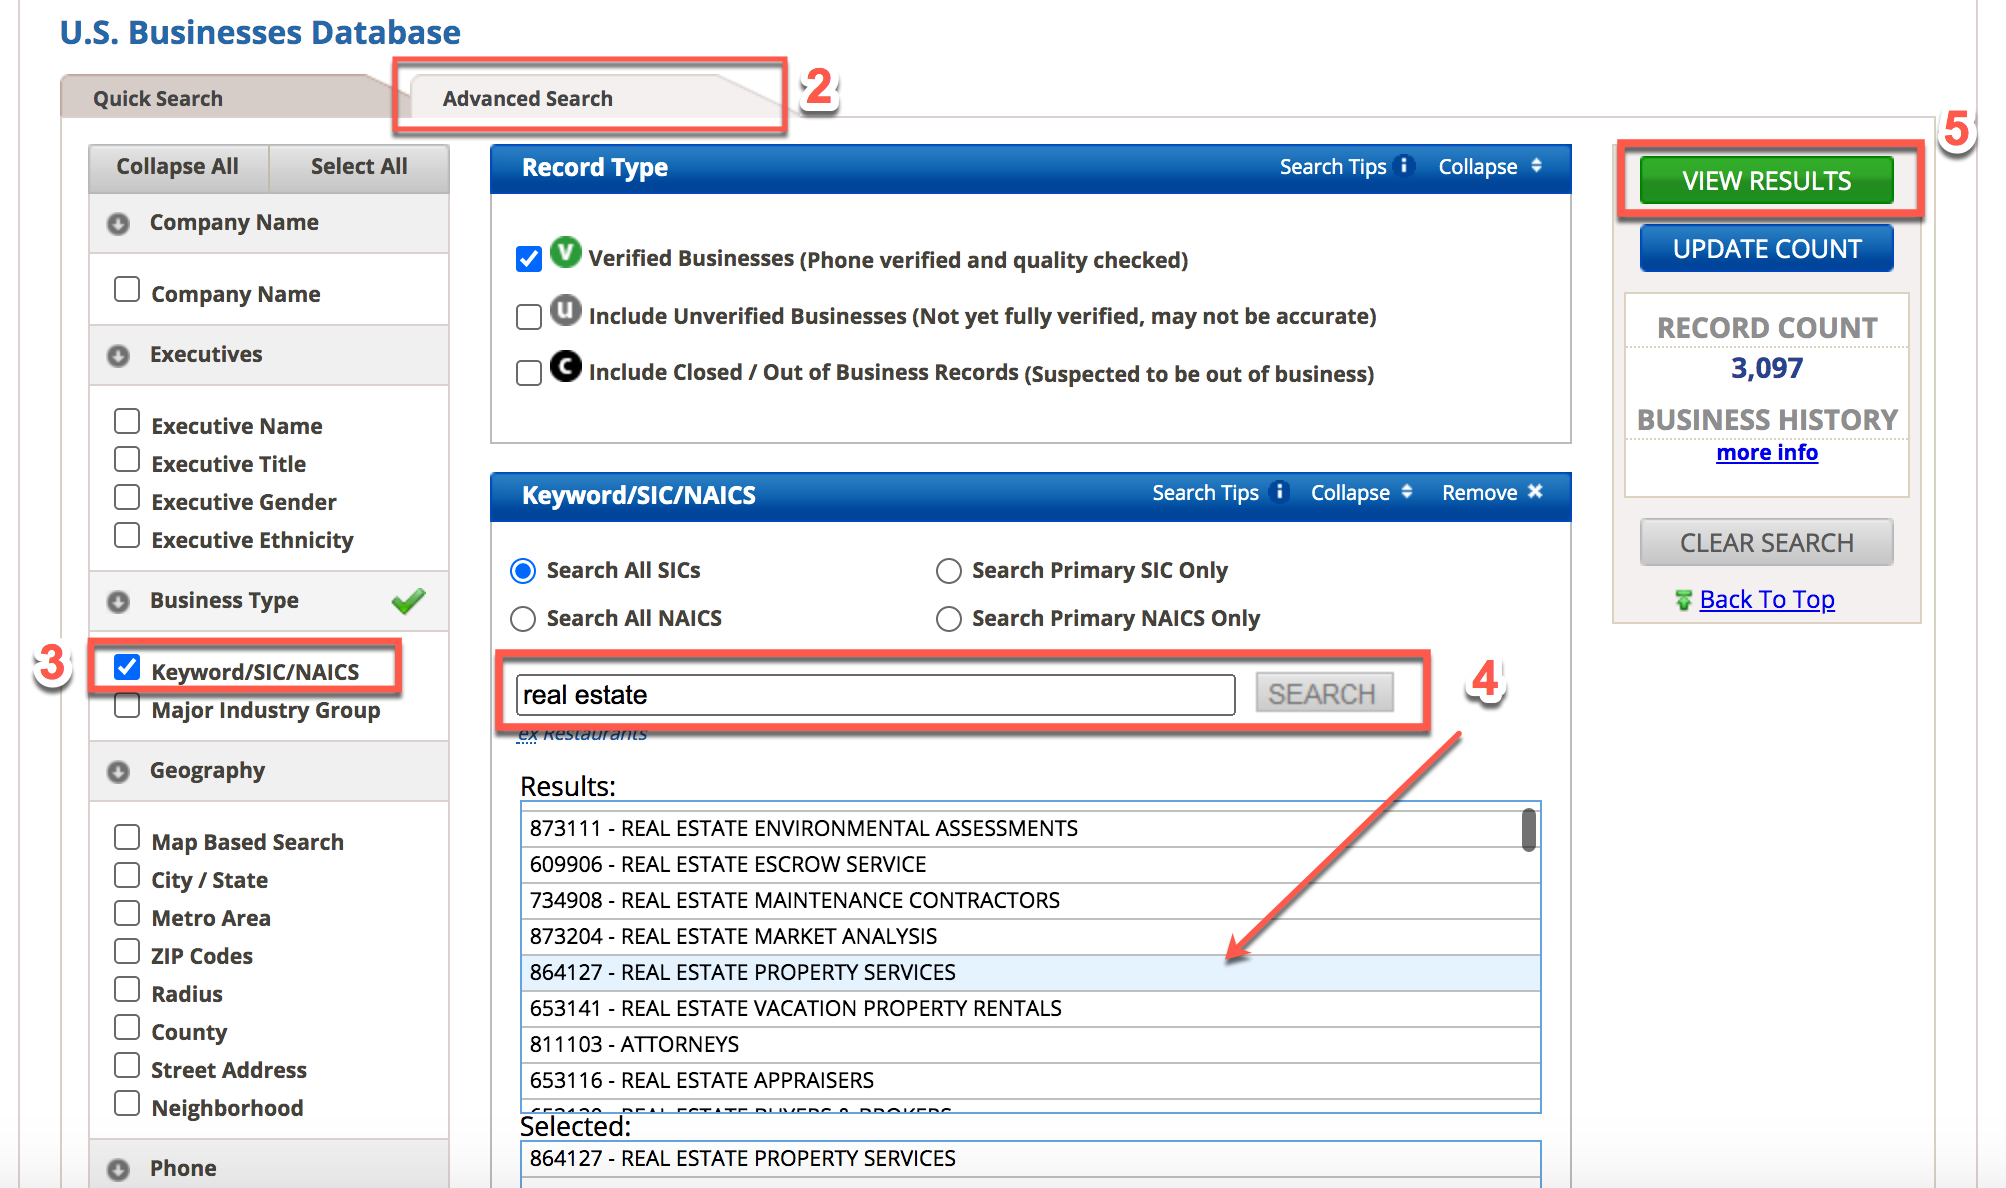 Screenshot showing steps 2 to 5 on the Reference USA database